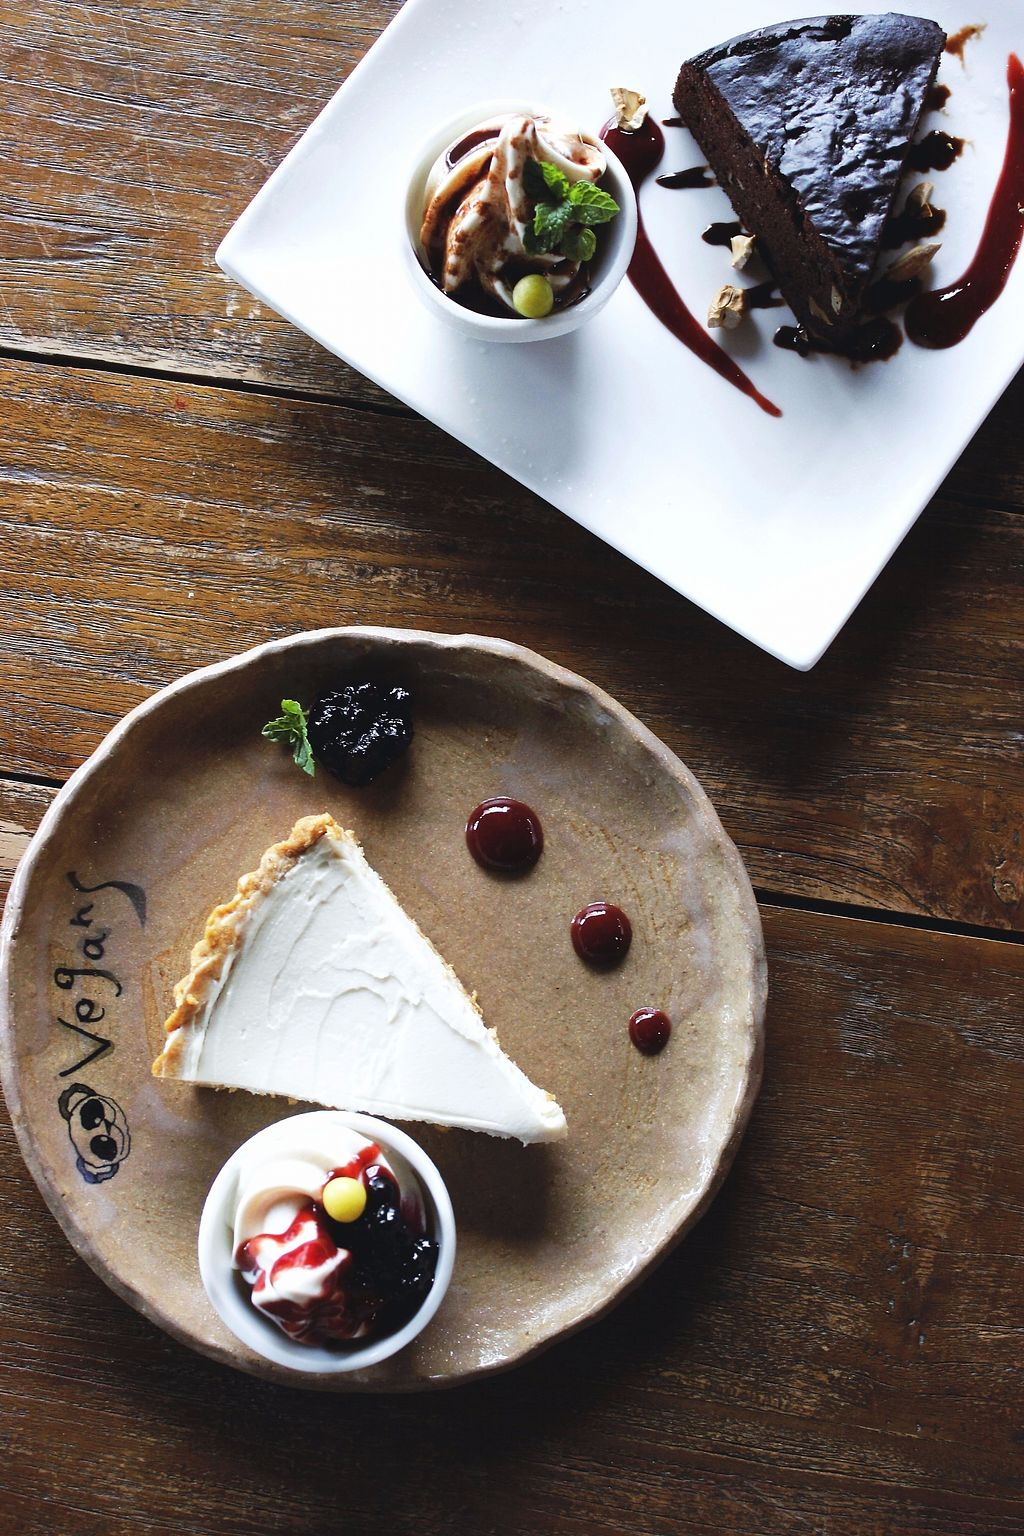 """Photo of Vegans Cafe and Restaurant  by <a href=""""/members/profile/YukiLim"""">YukiLim</a> <br/>Vegan lemon cheesecake and chocolate cake from Vegans Cafe <br/> July 16, 2017  - <a href='/contact/abuse/image/29114/280814'>Report</a>"""